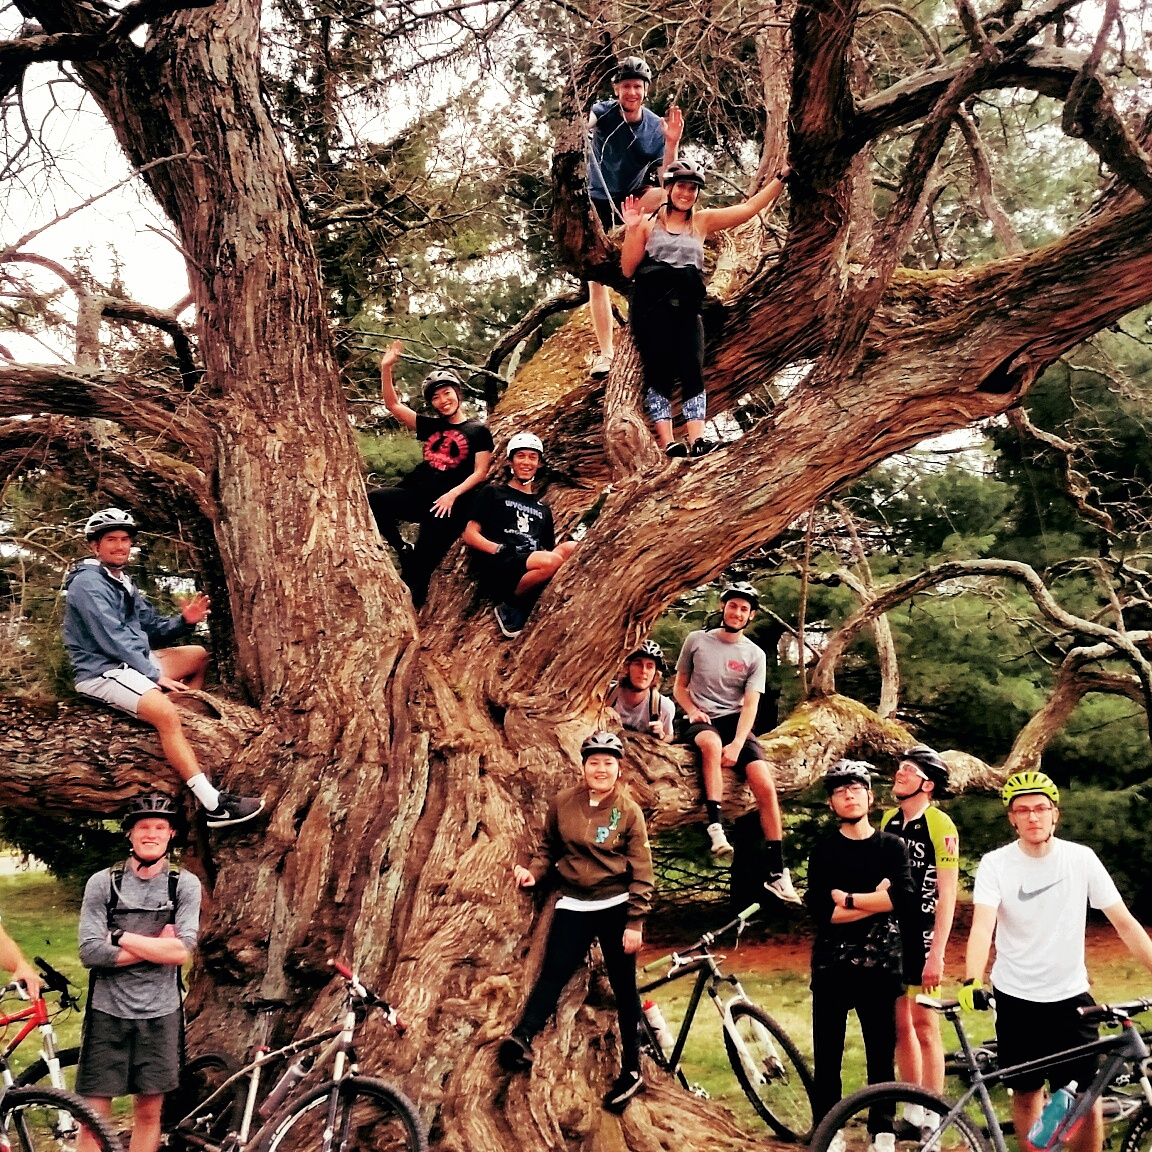 Students in a mountain bike club pose in a large tree.